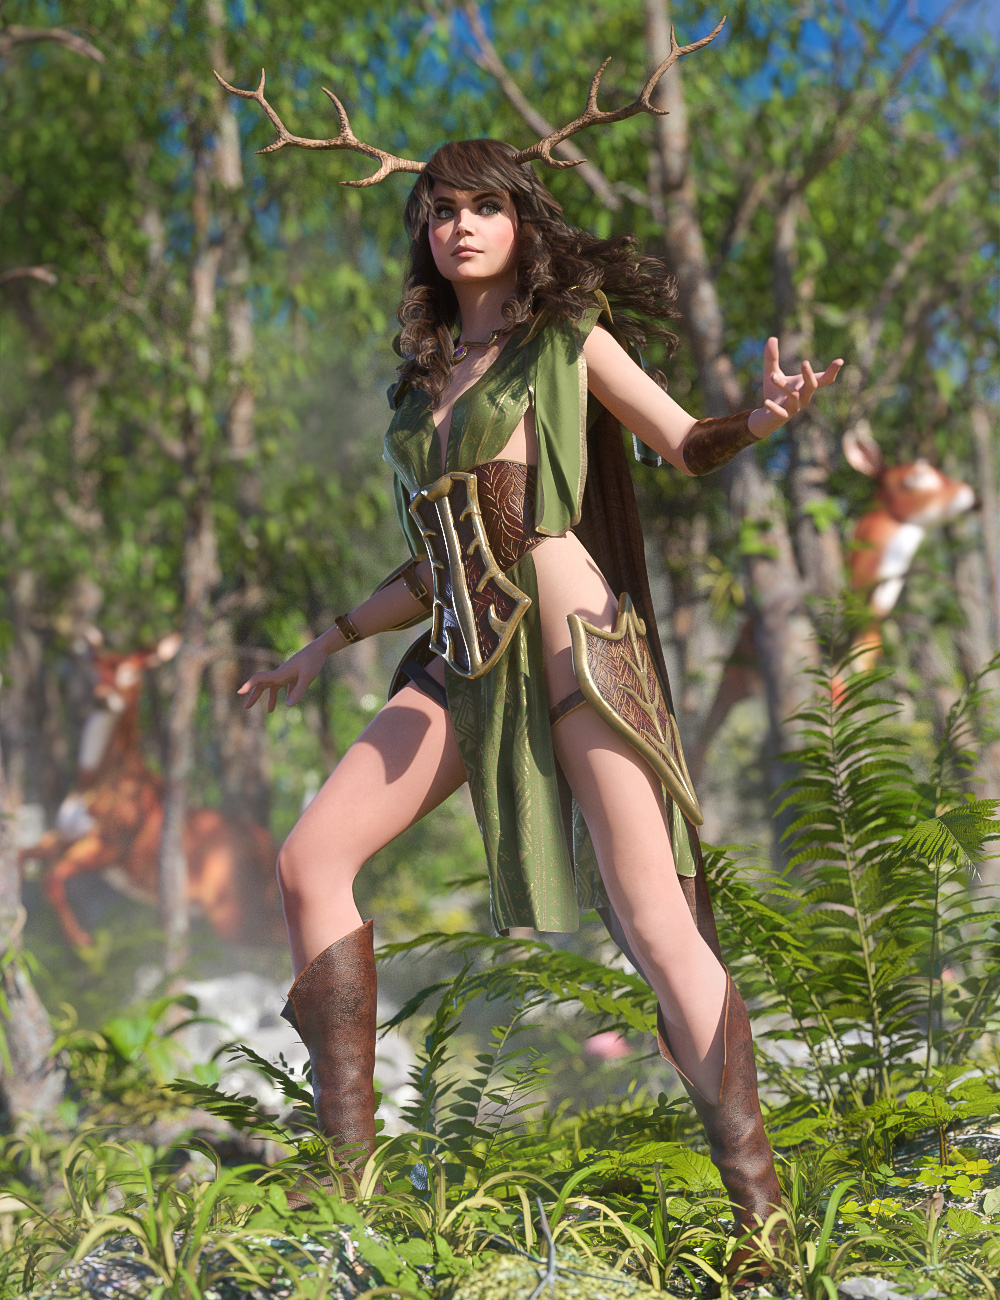 dForce Wood Warden for Genesis 8 Female(s) by: Moonscape GraphicsSade, 3D Models by Daz 3D